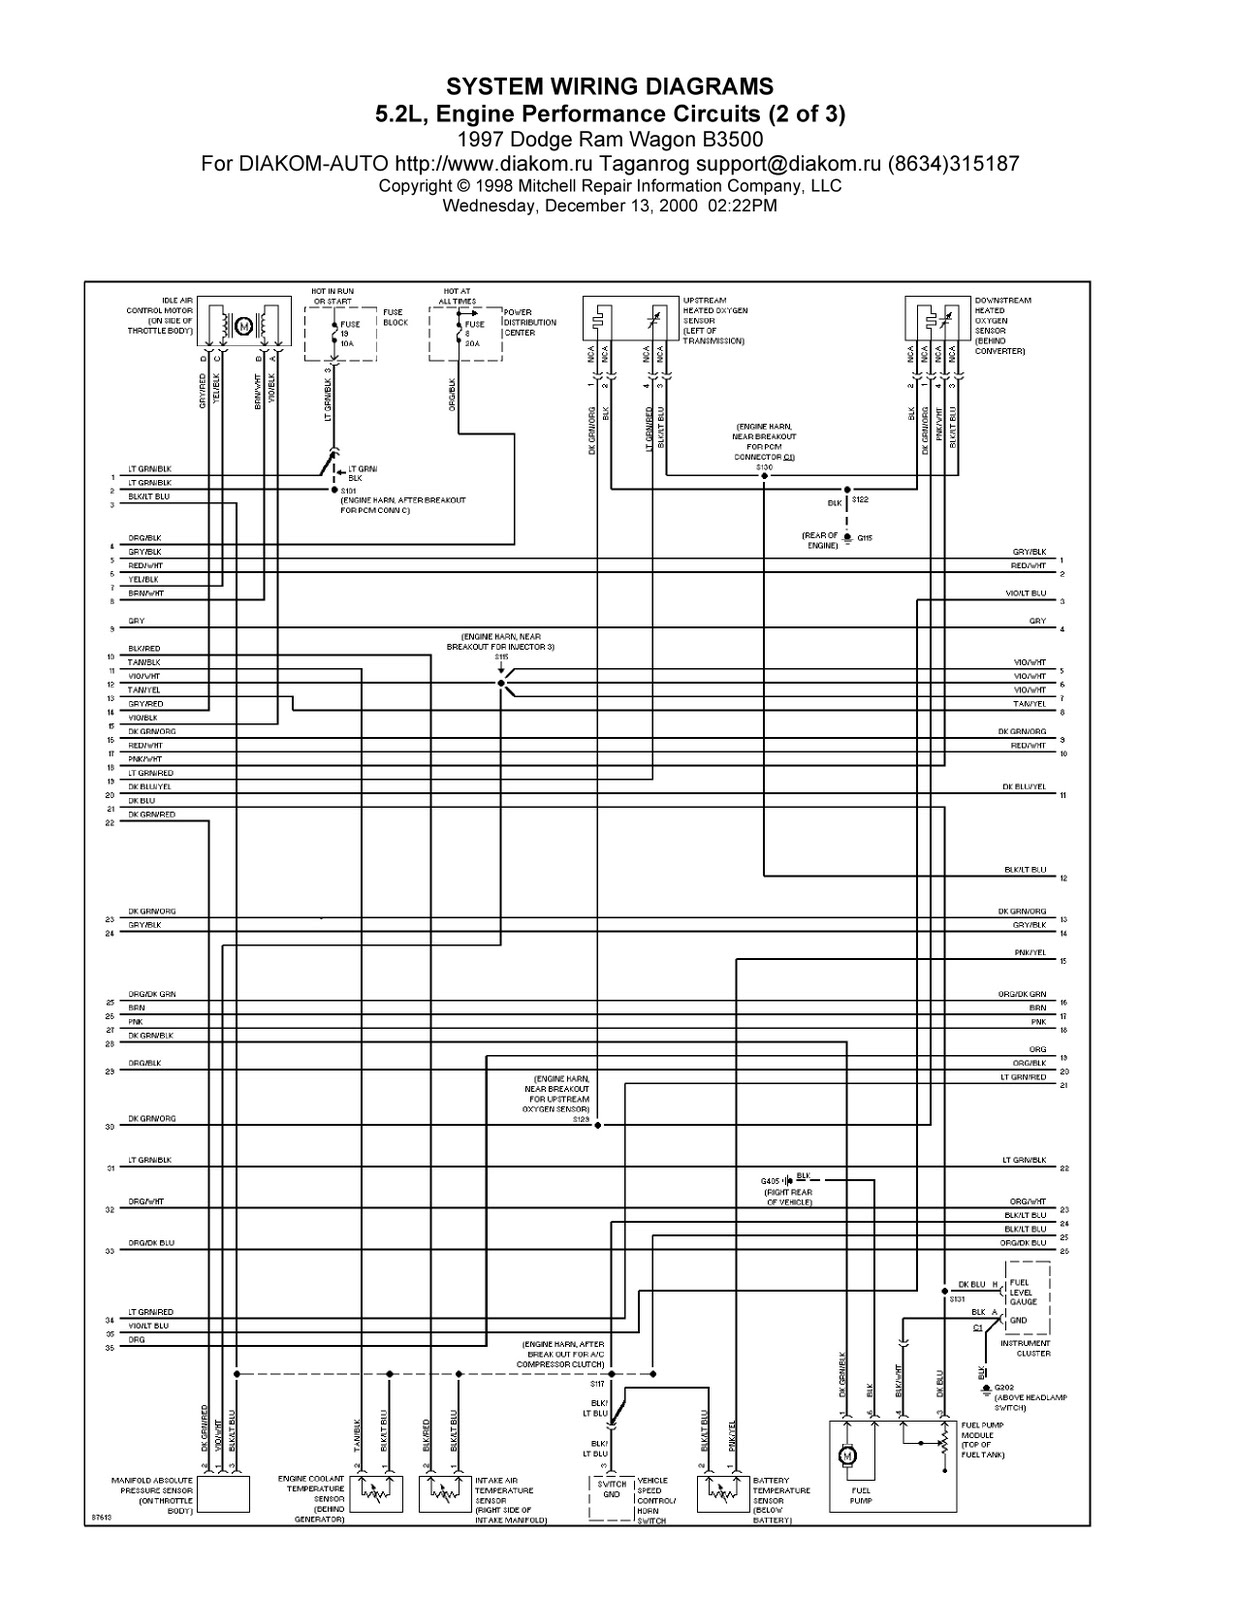 ford taurus fuel system wiring schematic may 2011 | schematic wiring diagrams solutions